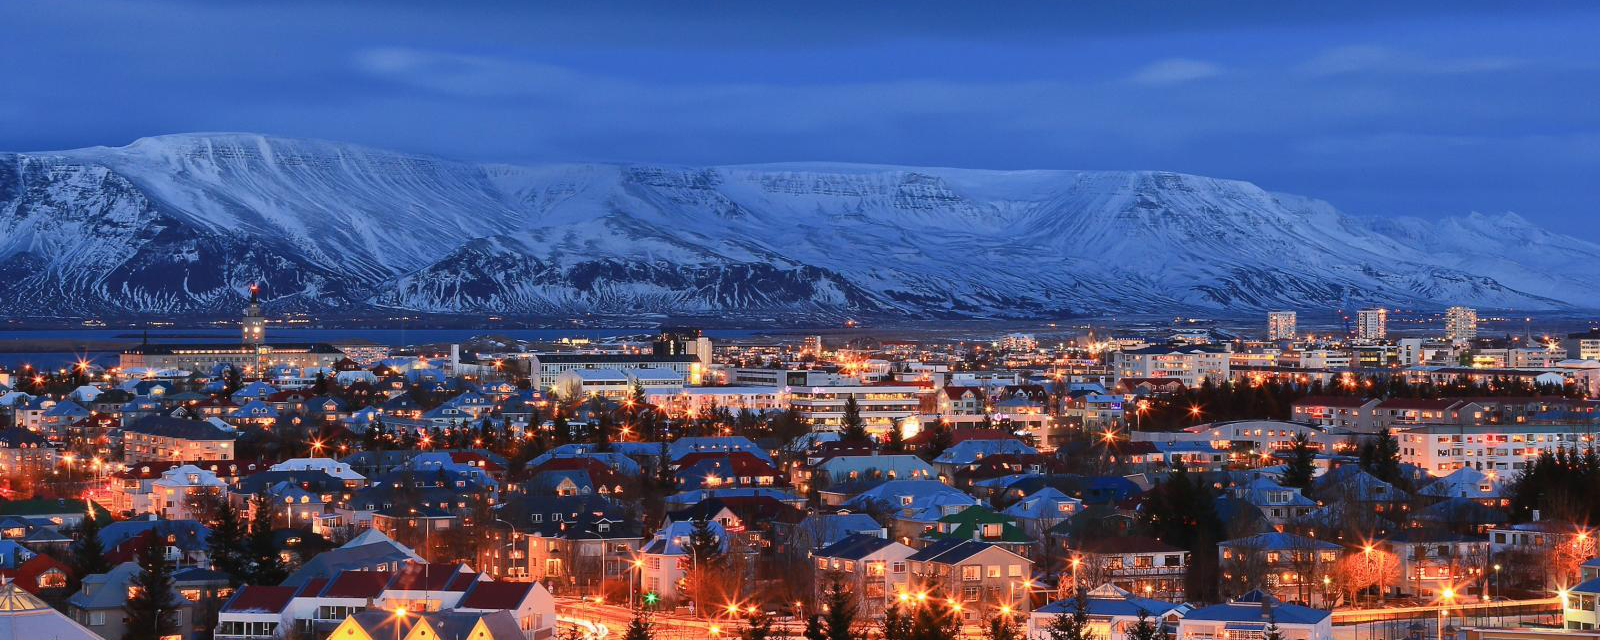 Icelandic women protest country's 14 percent pay gap by leaving work 14 percent early